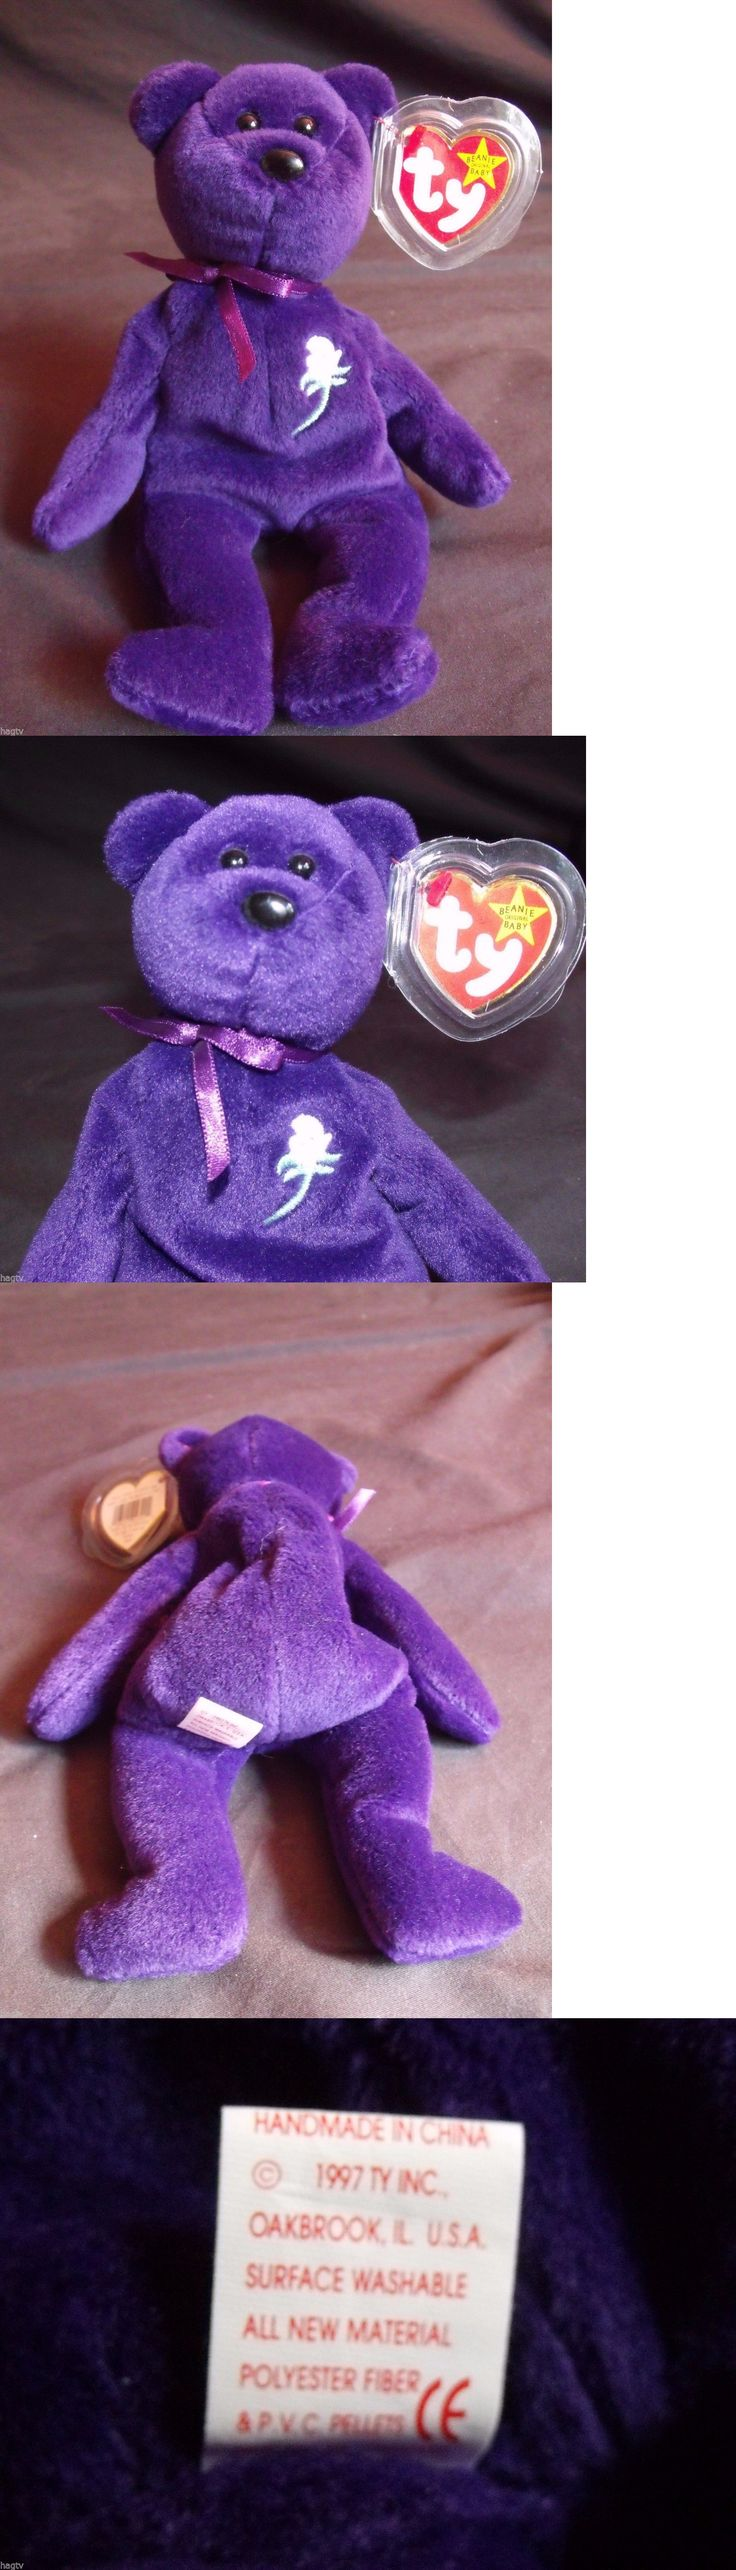 Retired 1636: 1997 Authentic Ty Beanie Babies Princess Diana Di 1St Edition Pvc China No Space -> BUY IT NOW ONLY: $22000 on eBay!